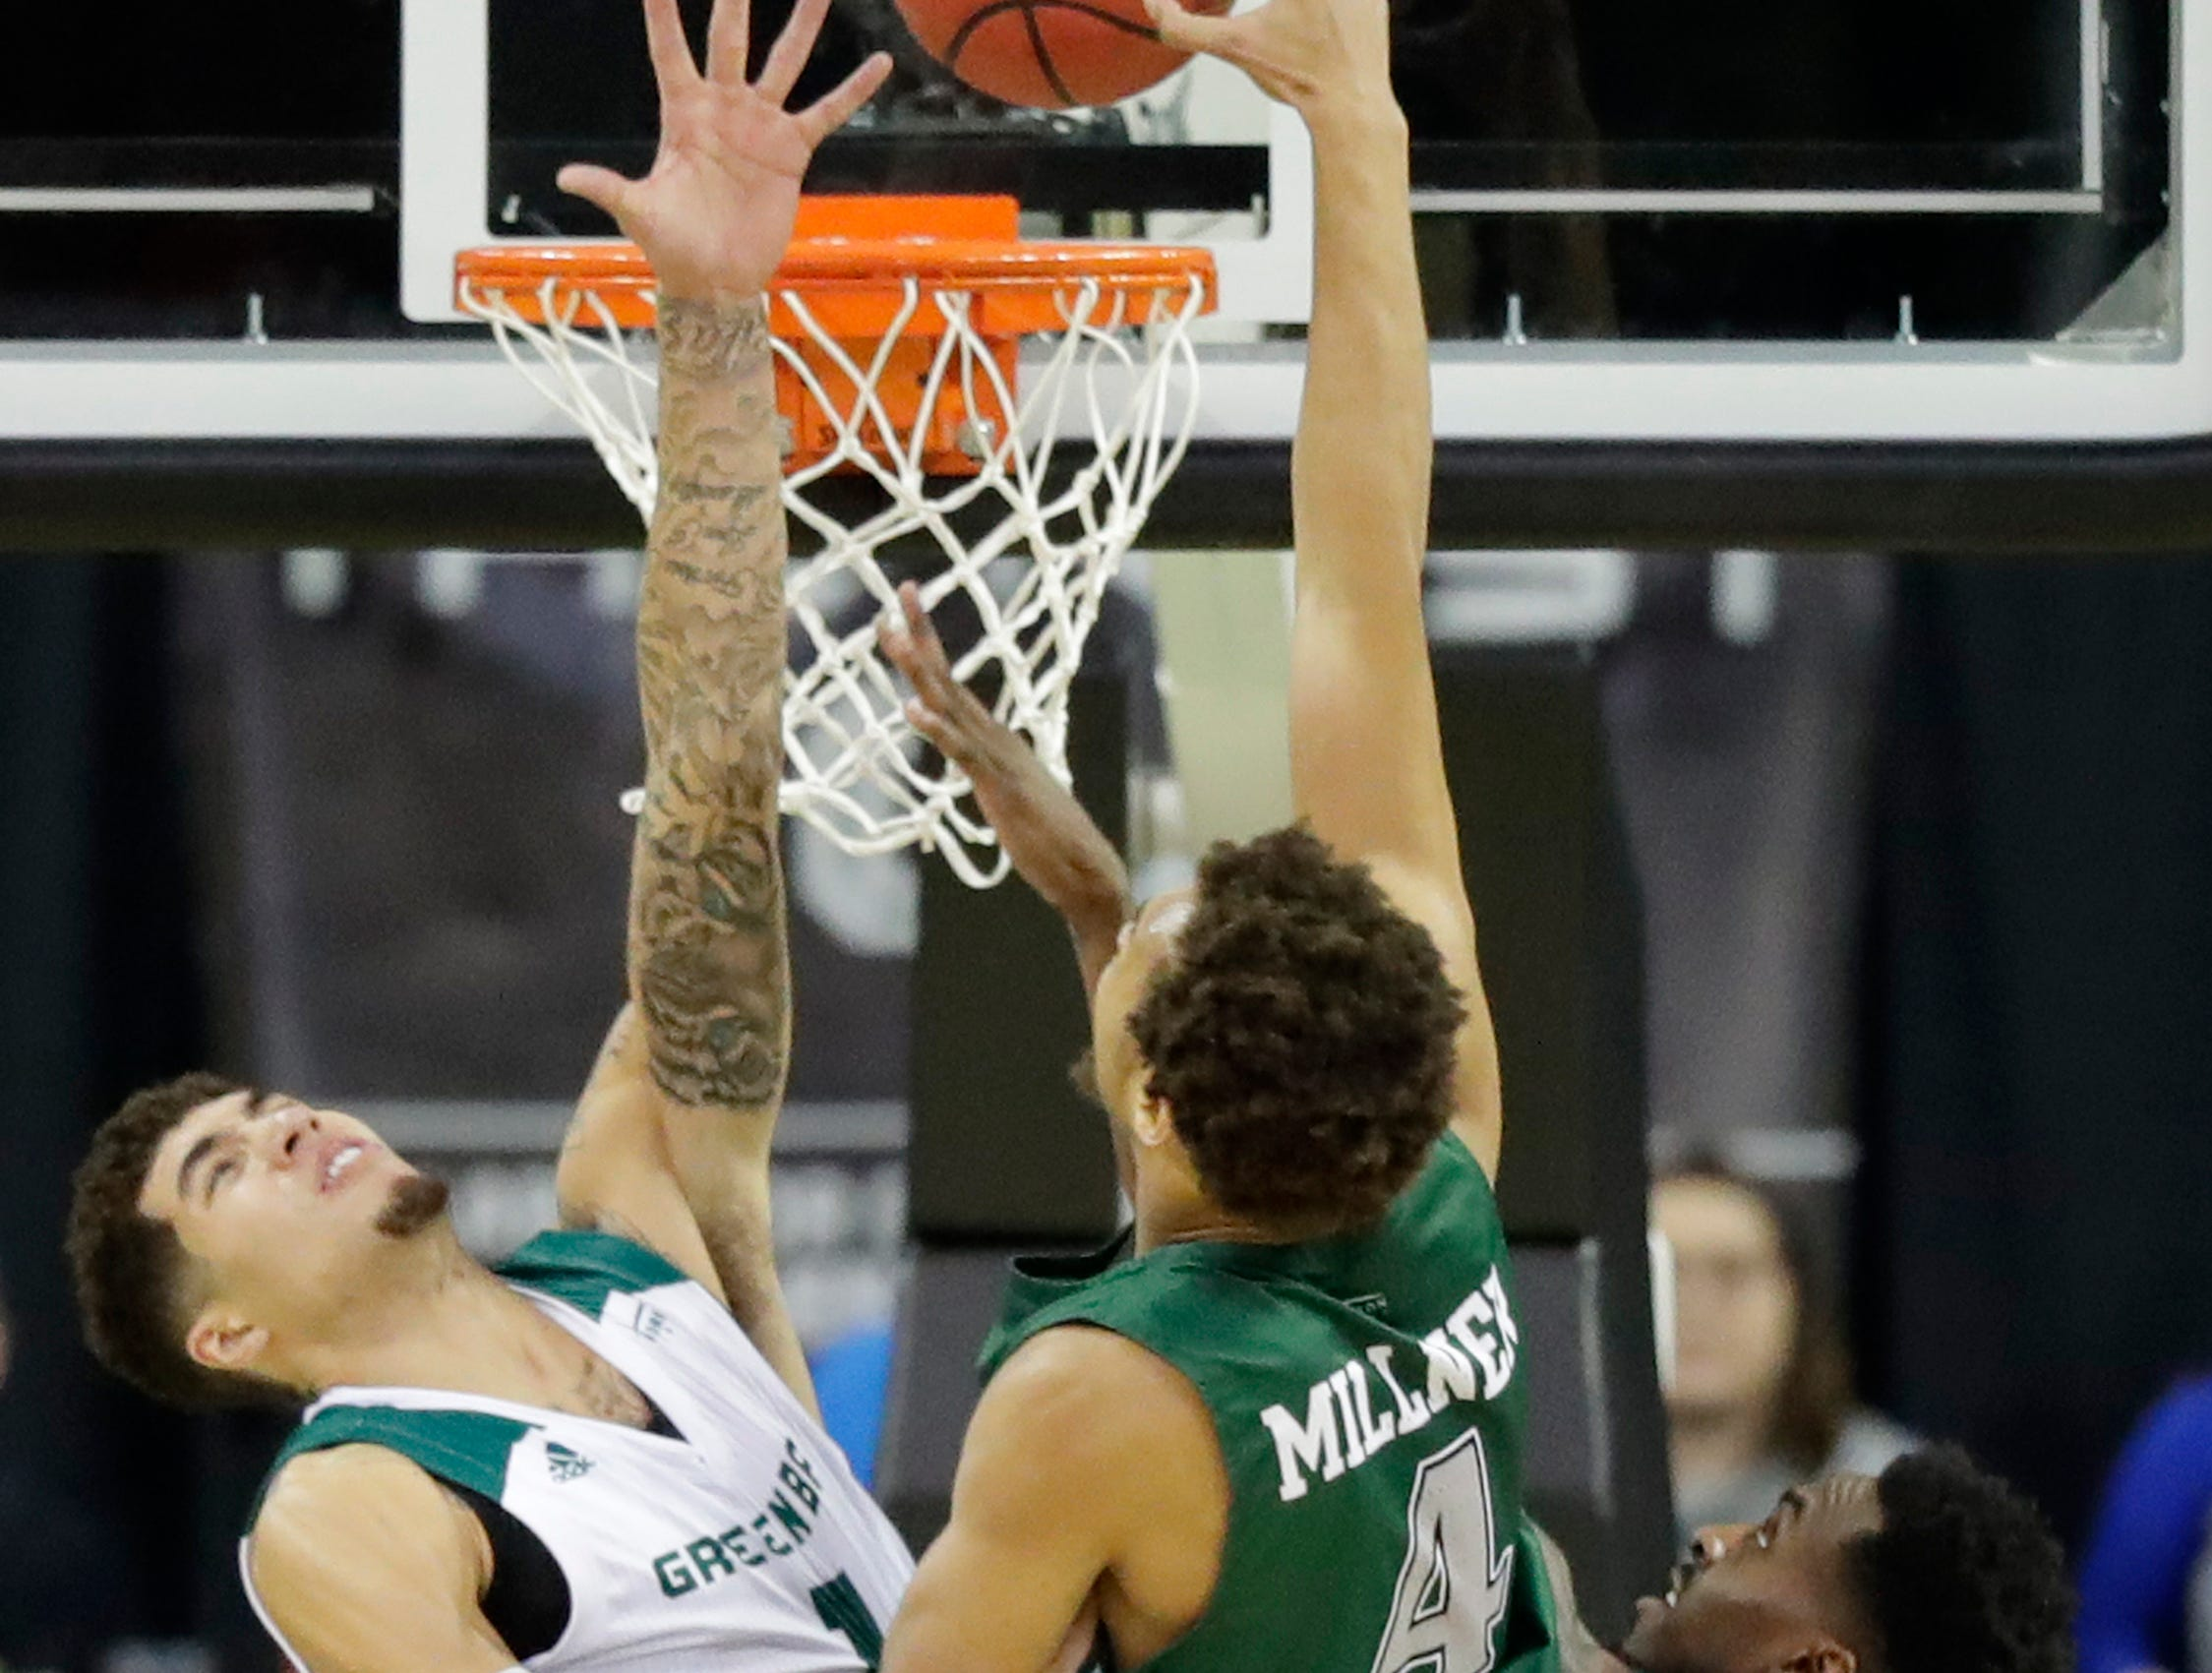 Green Bay Phoenix guard Sandy Cohen III (1) blocks a shot by Cleveland State Vikings forward Seth Millner (4) in a Horizon League basketball game at the Resch Center on Saturday, January 5, 2019 in Green Bay, Wis.